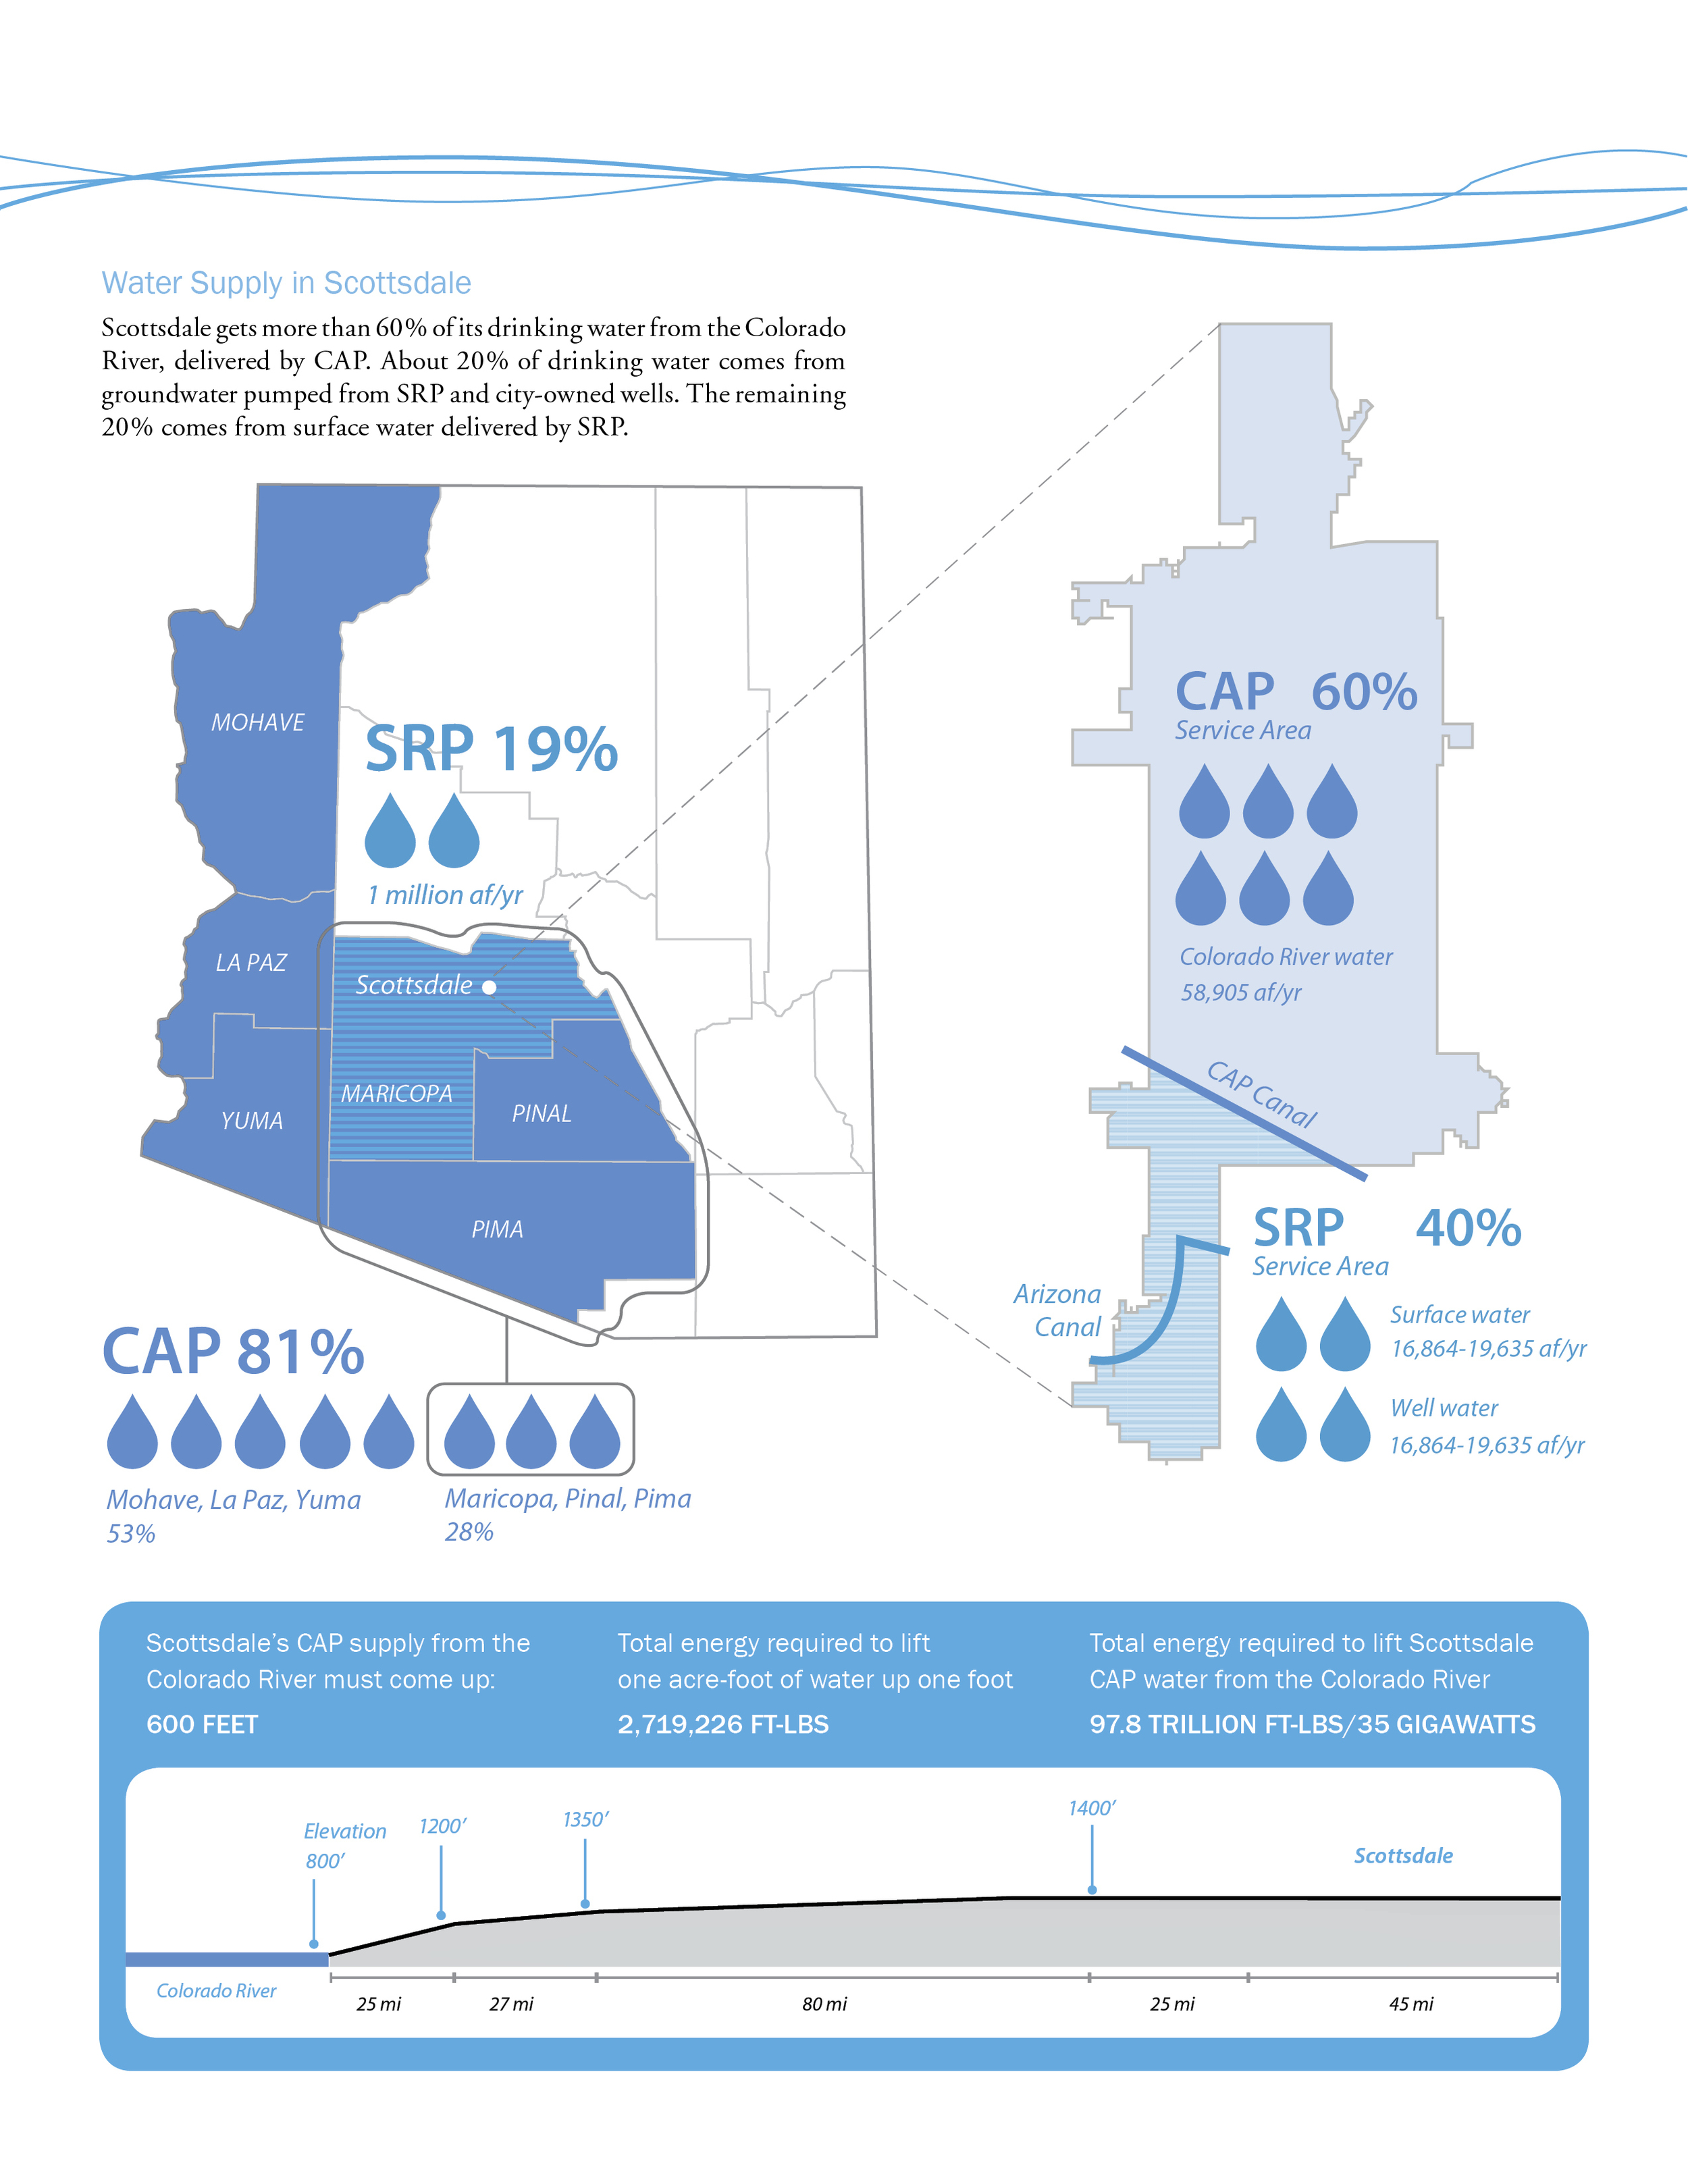 Not only is the water from the Colorado River shared by the states, the water is shared in Arizona between agricultural and municipal uses.    Showing what systems supply water to the different sections of Scottsdale can reveal where climate change and drought could affect the city.     The big story in water is the energy used. The CAP system is the number one energy user in the state as water is pumped 'uphill'.